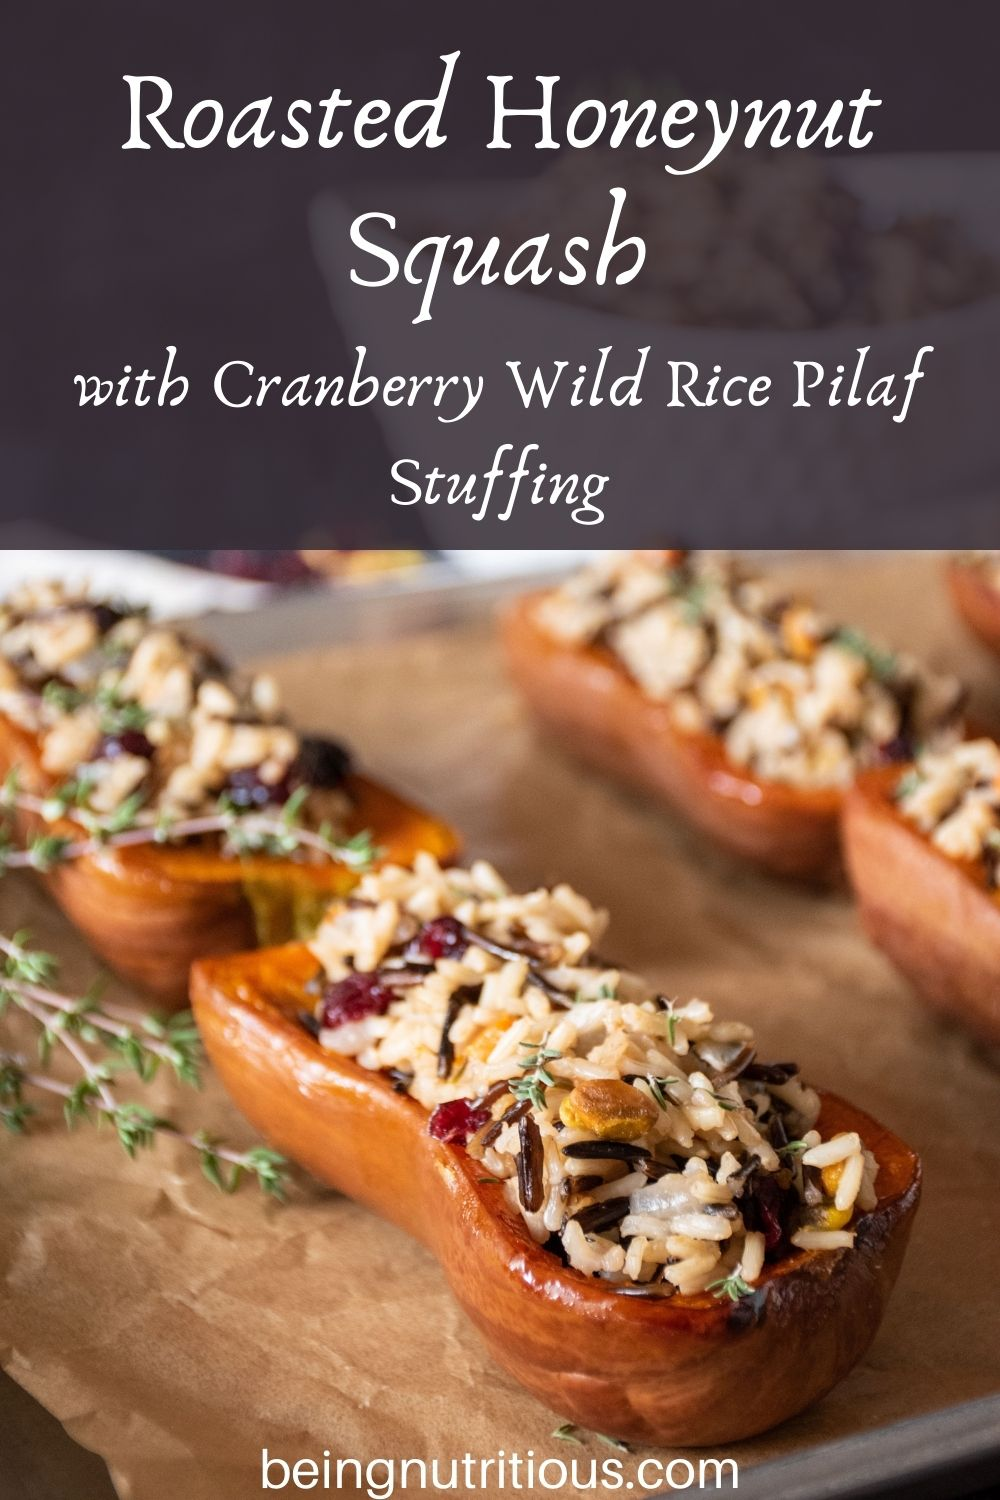 Stuffed honeynut squash halves on a baking pan. Text overlay: Roasted Honeynut Squash with Cranberry Wild Rice Pilaf Stuffing.